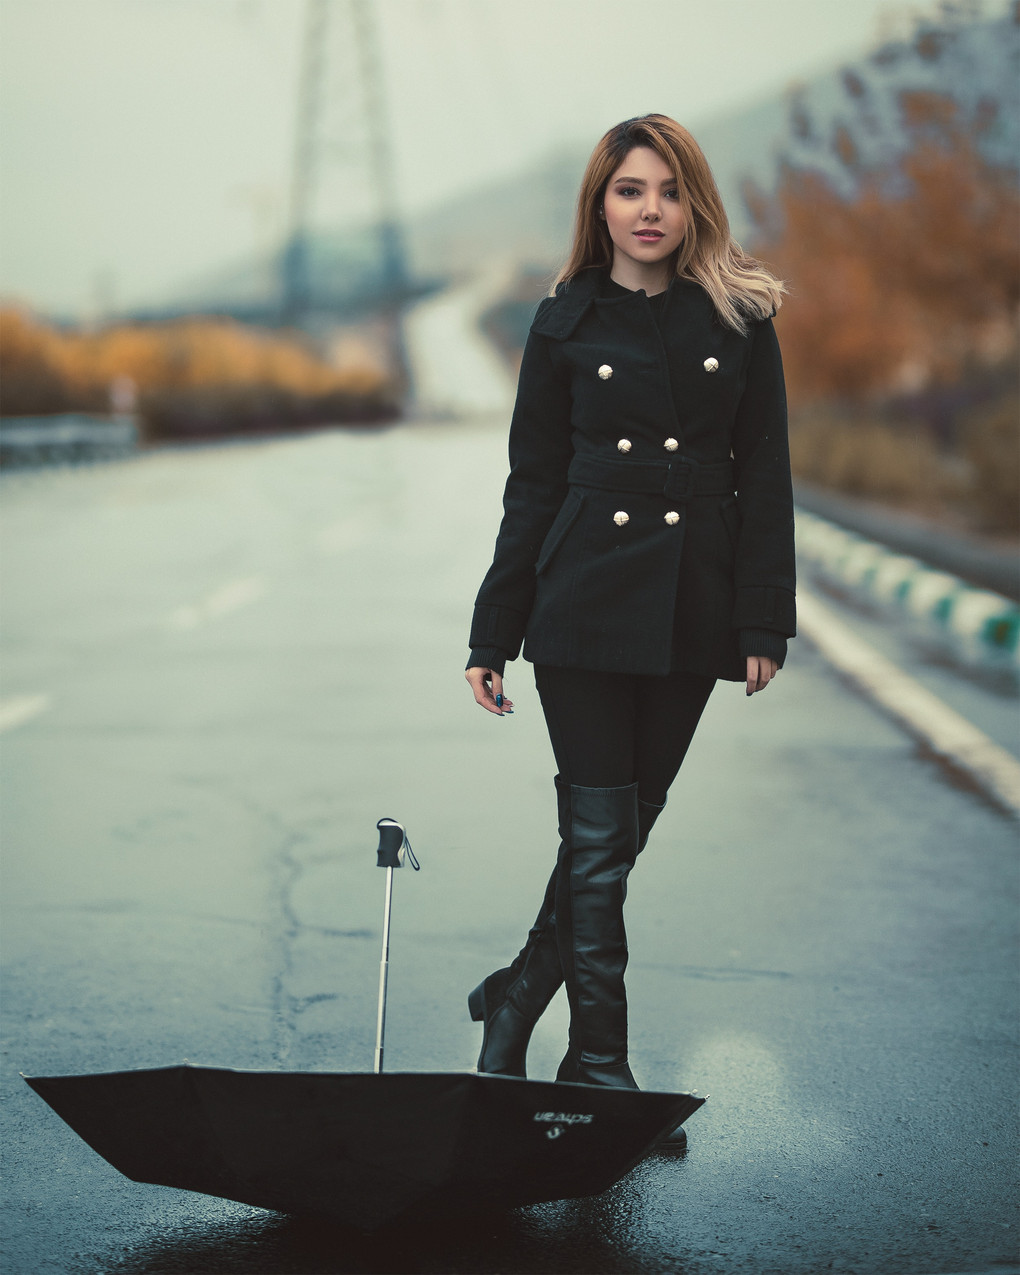 woman-in-black-double-button-jacket-2887